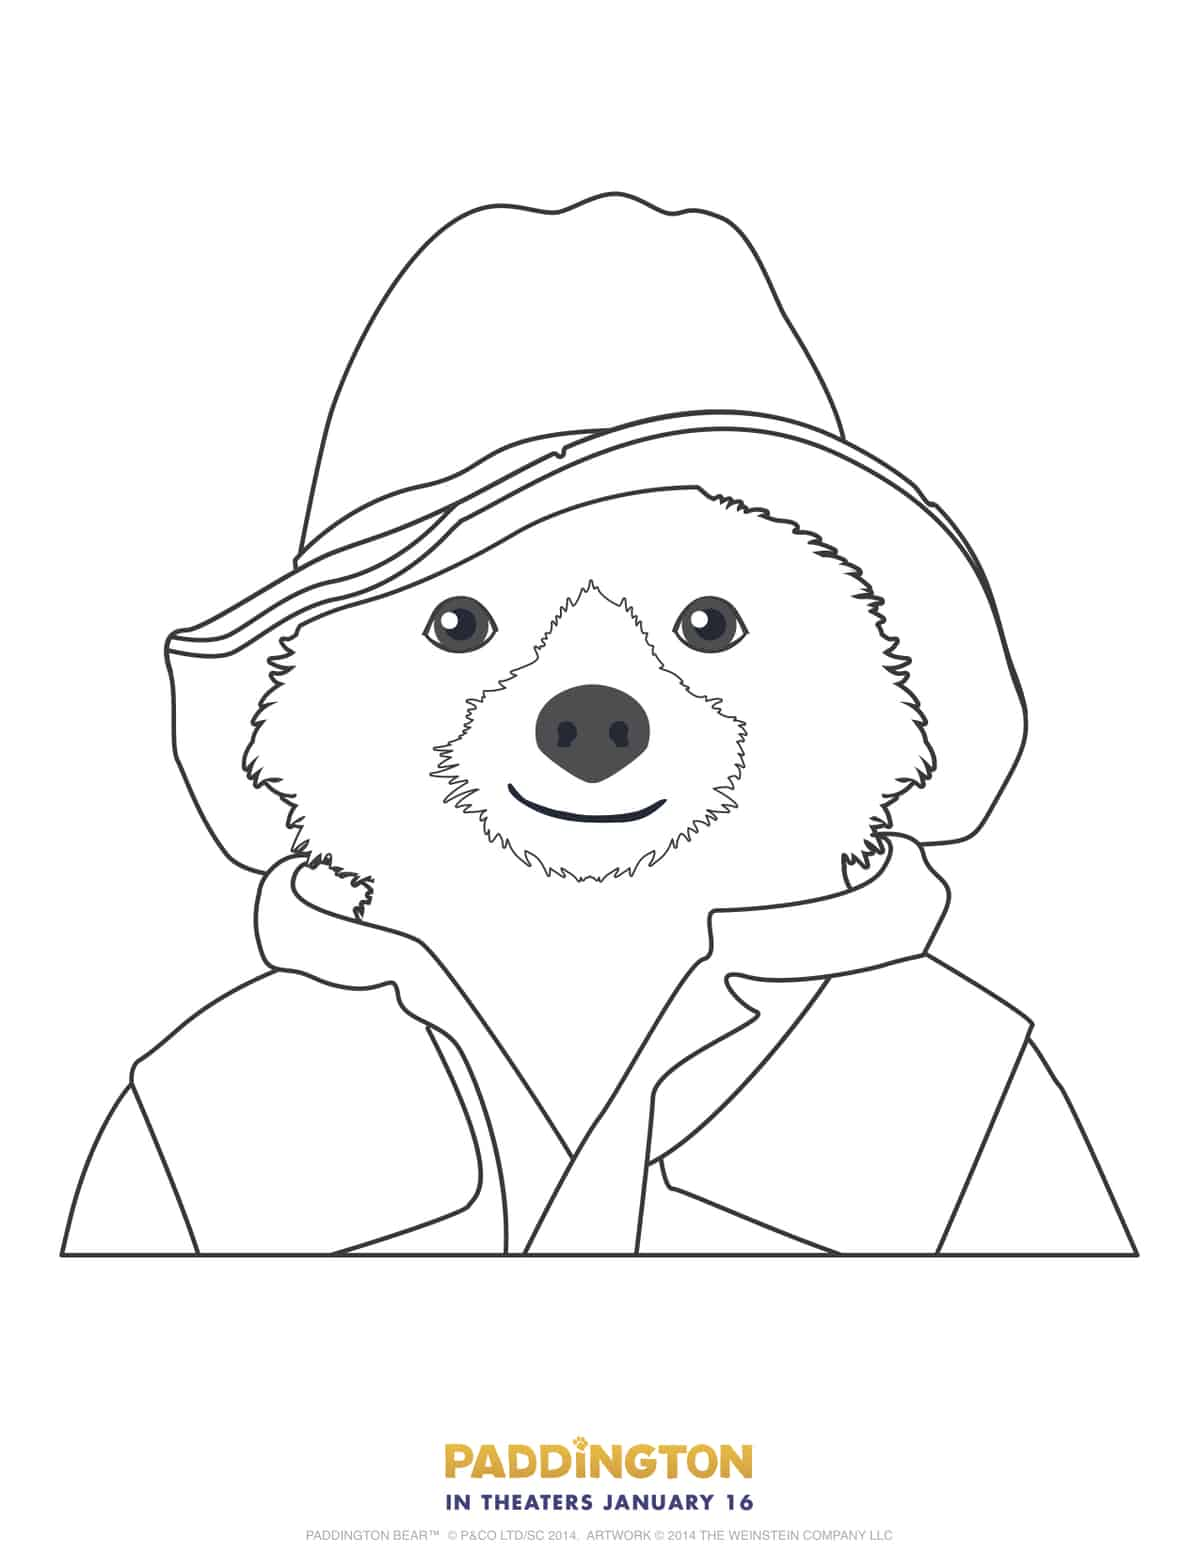 PADDINGTON arrives in theaters January 16! #